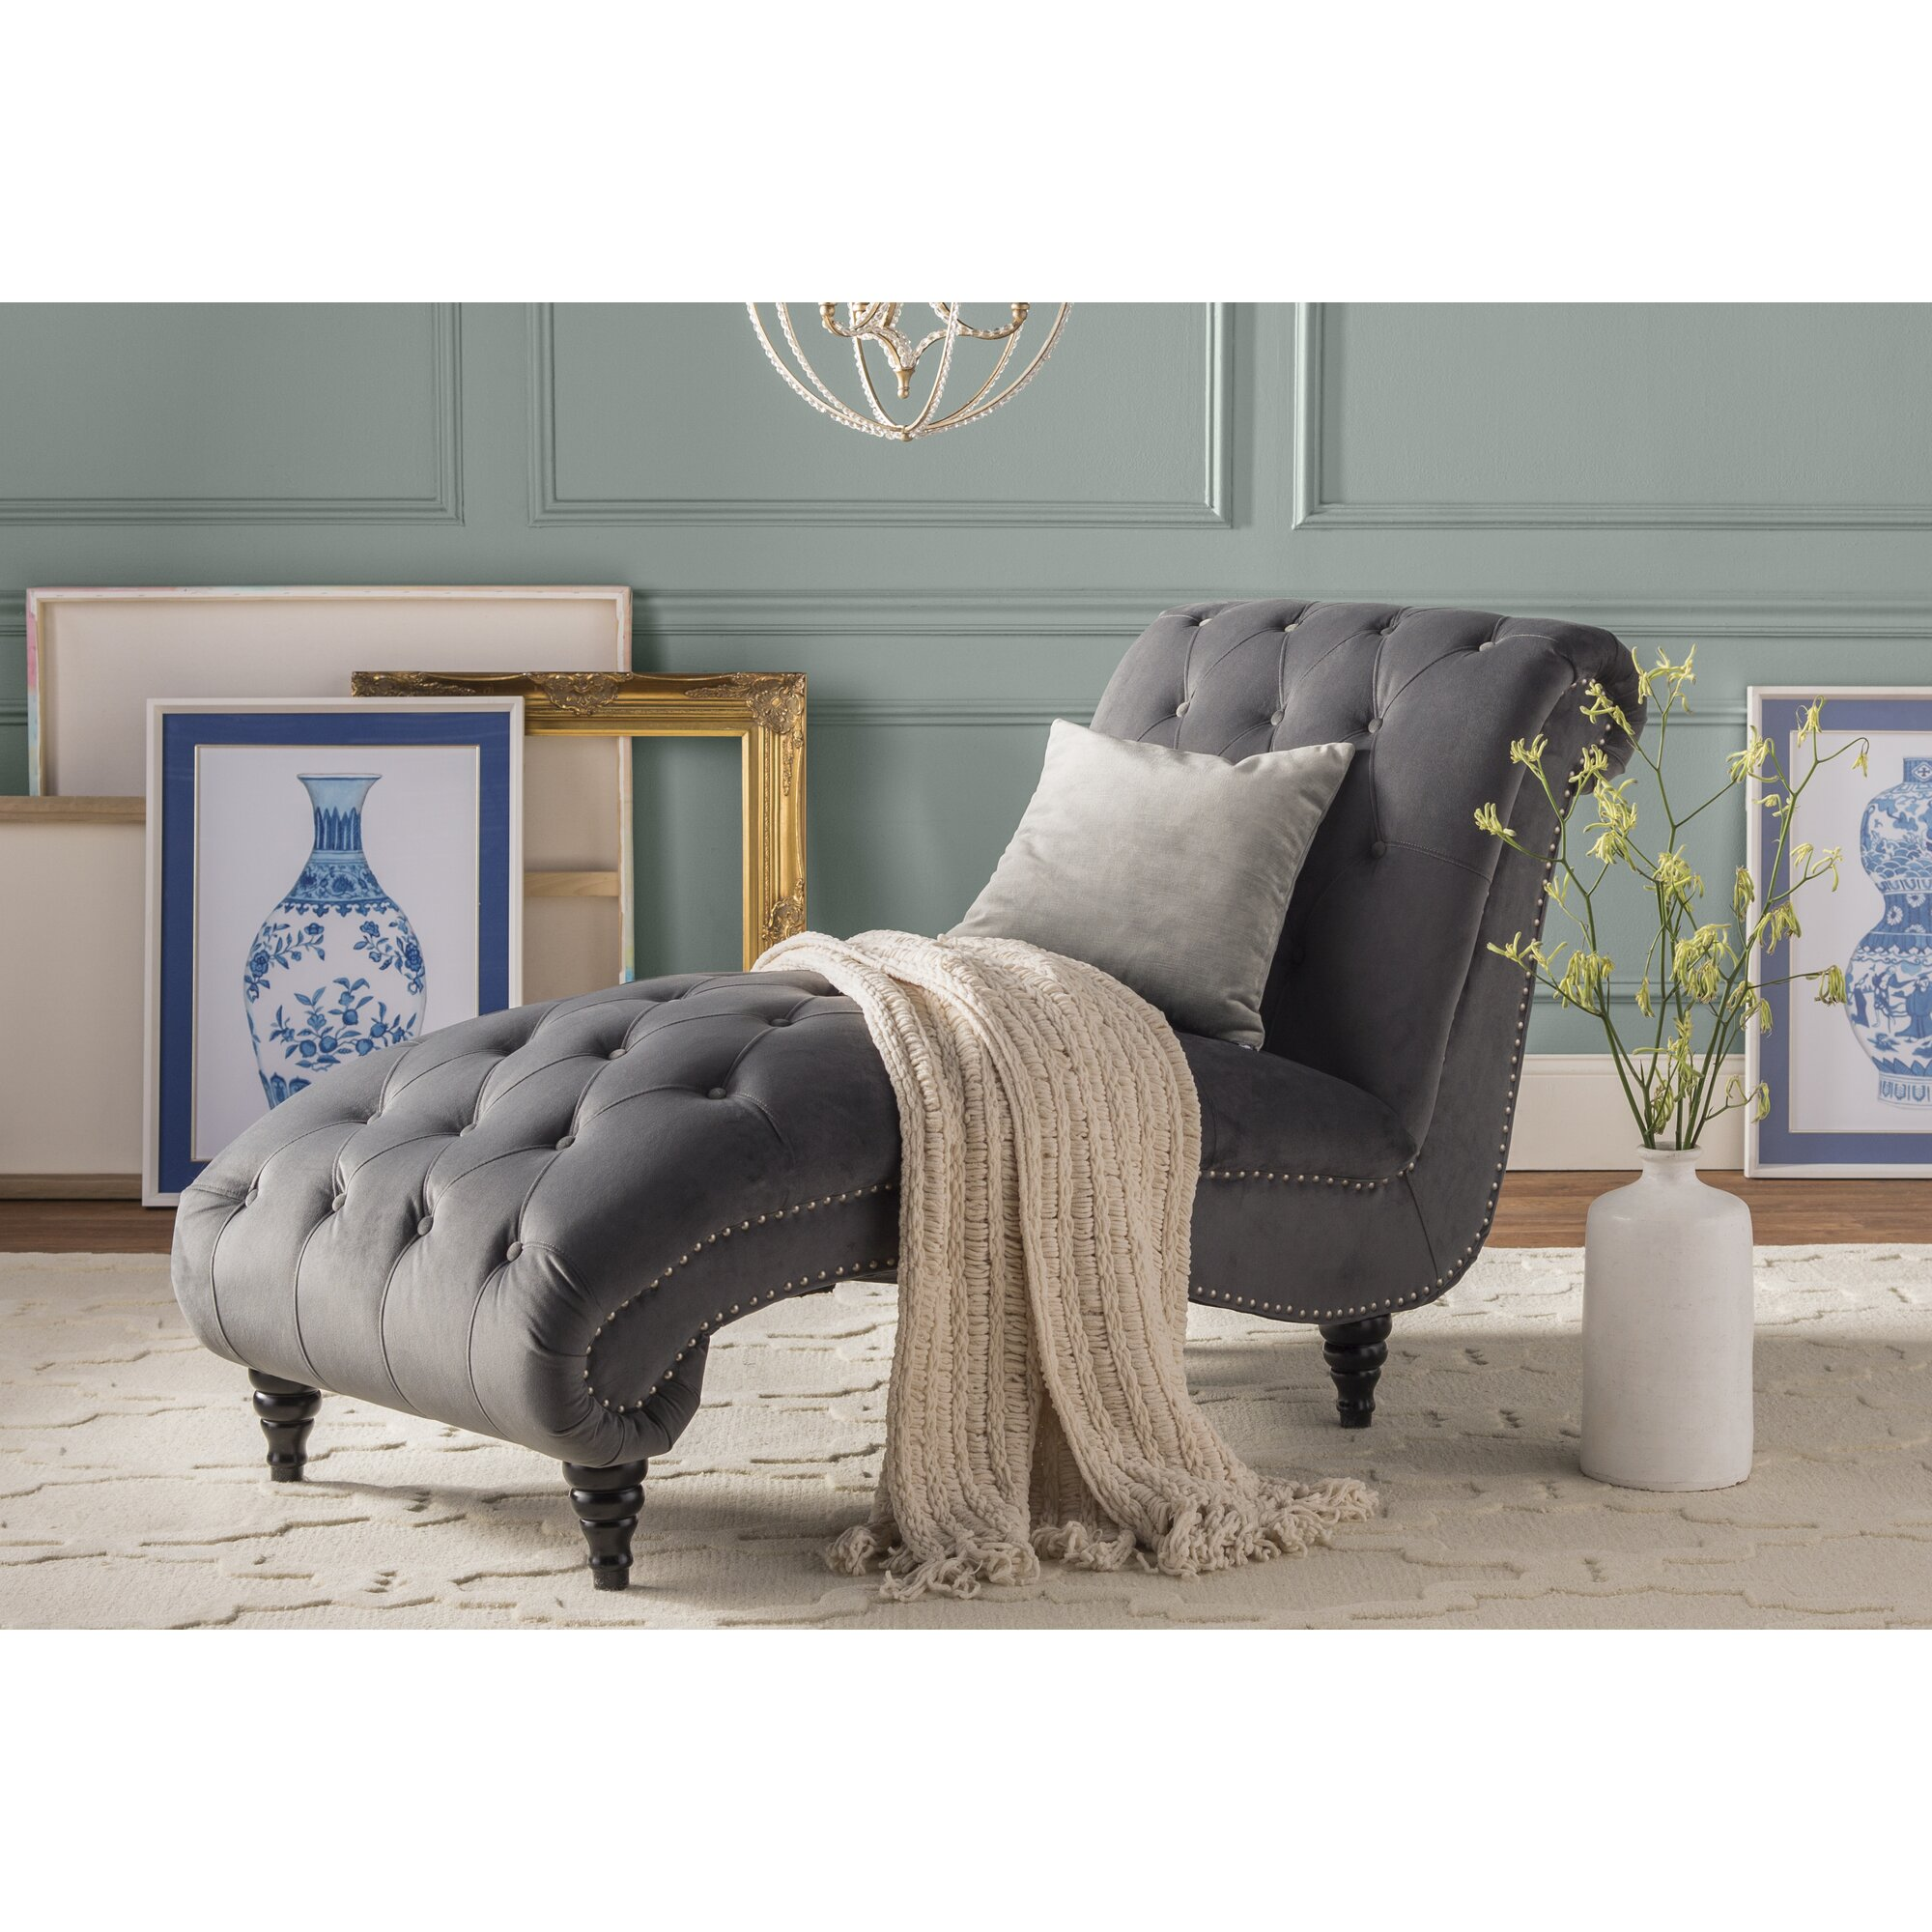 House of hampton kirkby chaise lounge reviews for P a furniture kirkby